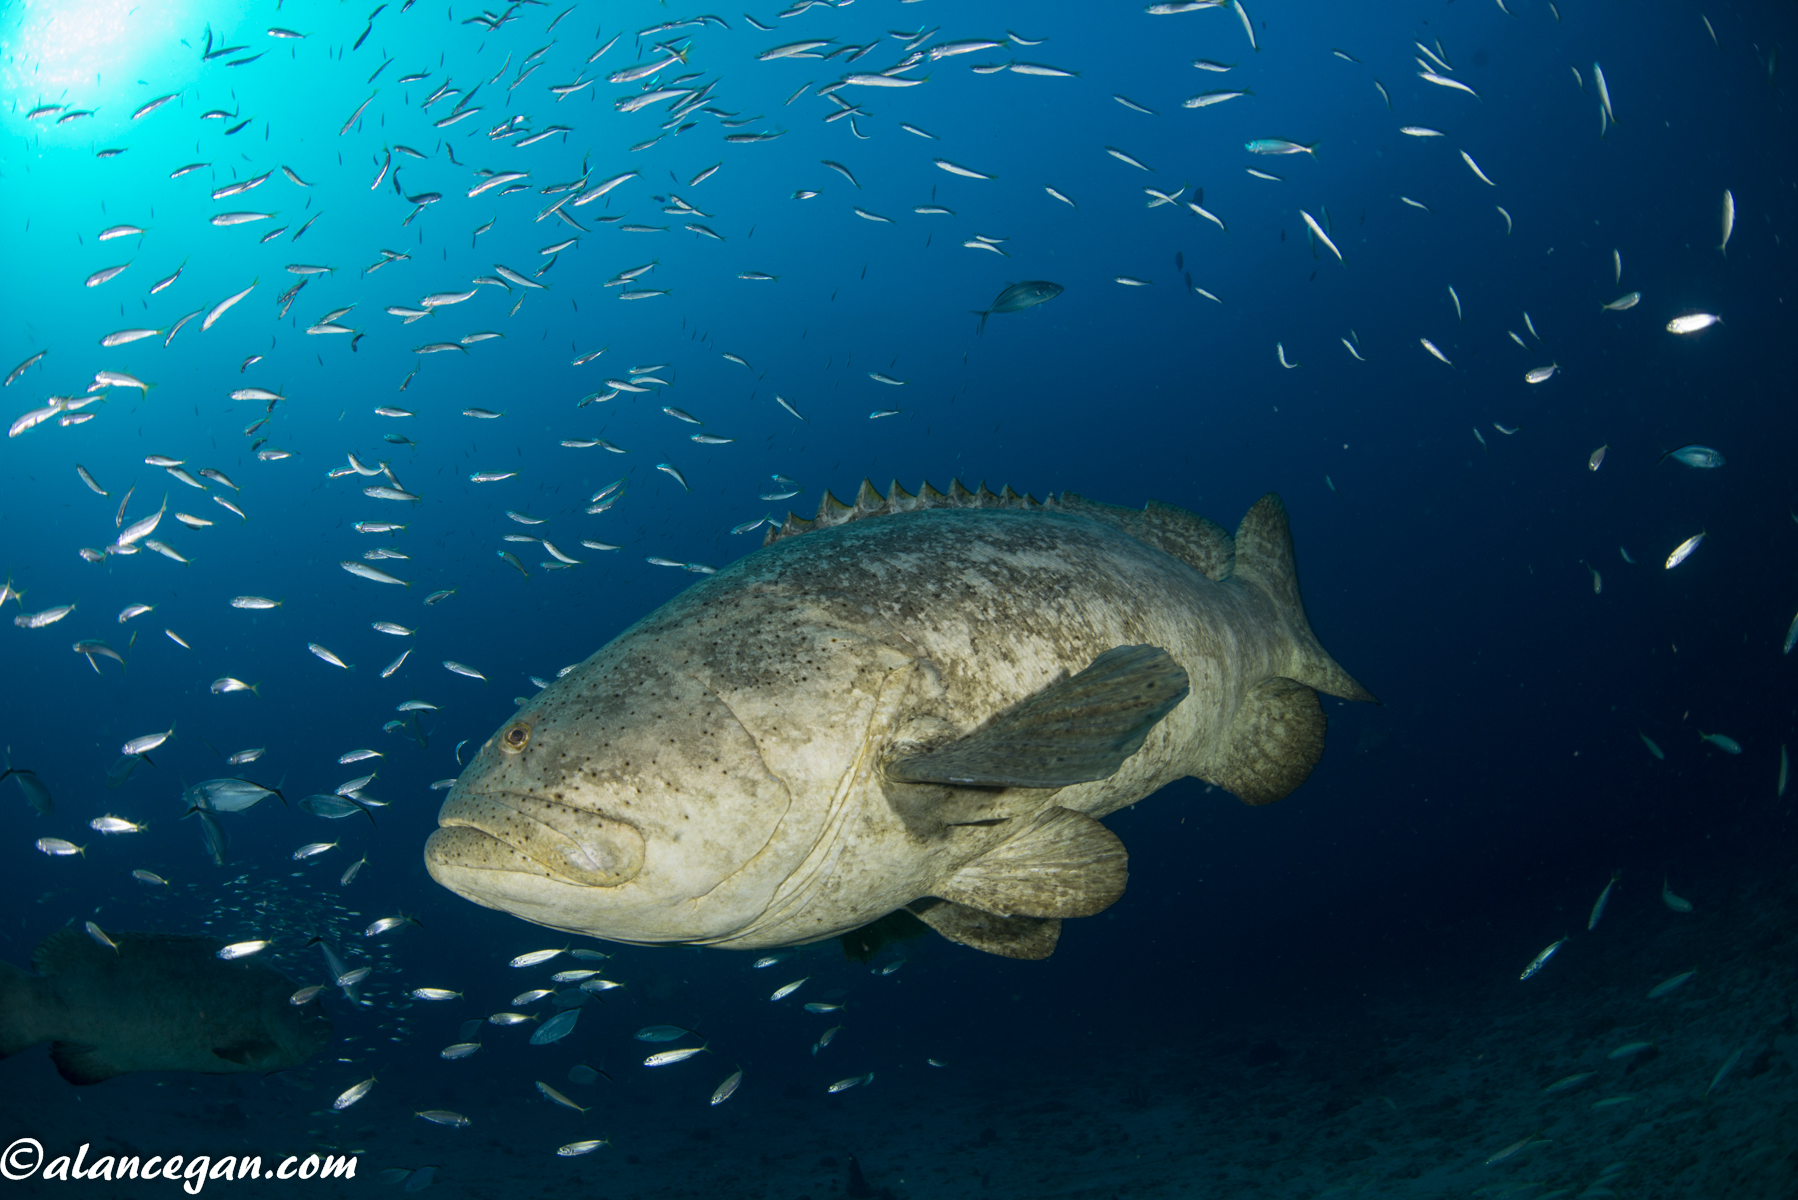 Underwater photograph of a Goliath Grouper on the wreck of the Castor